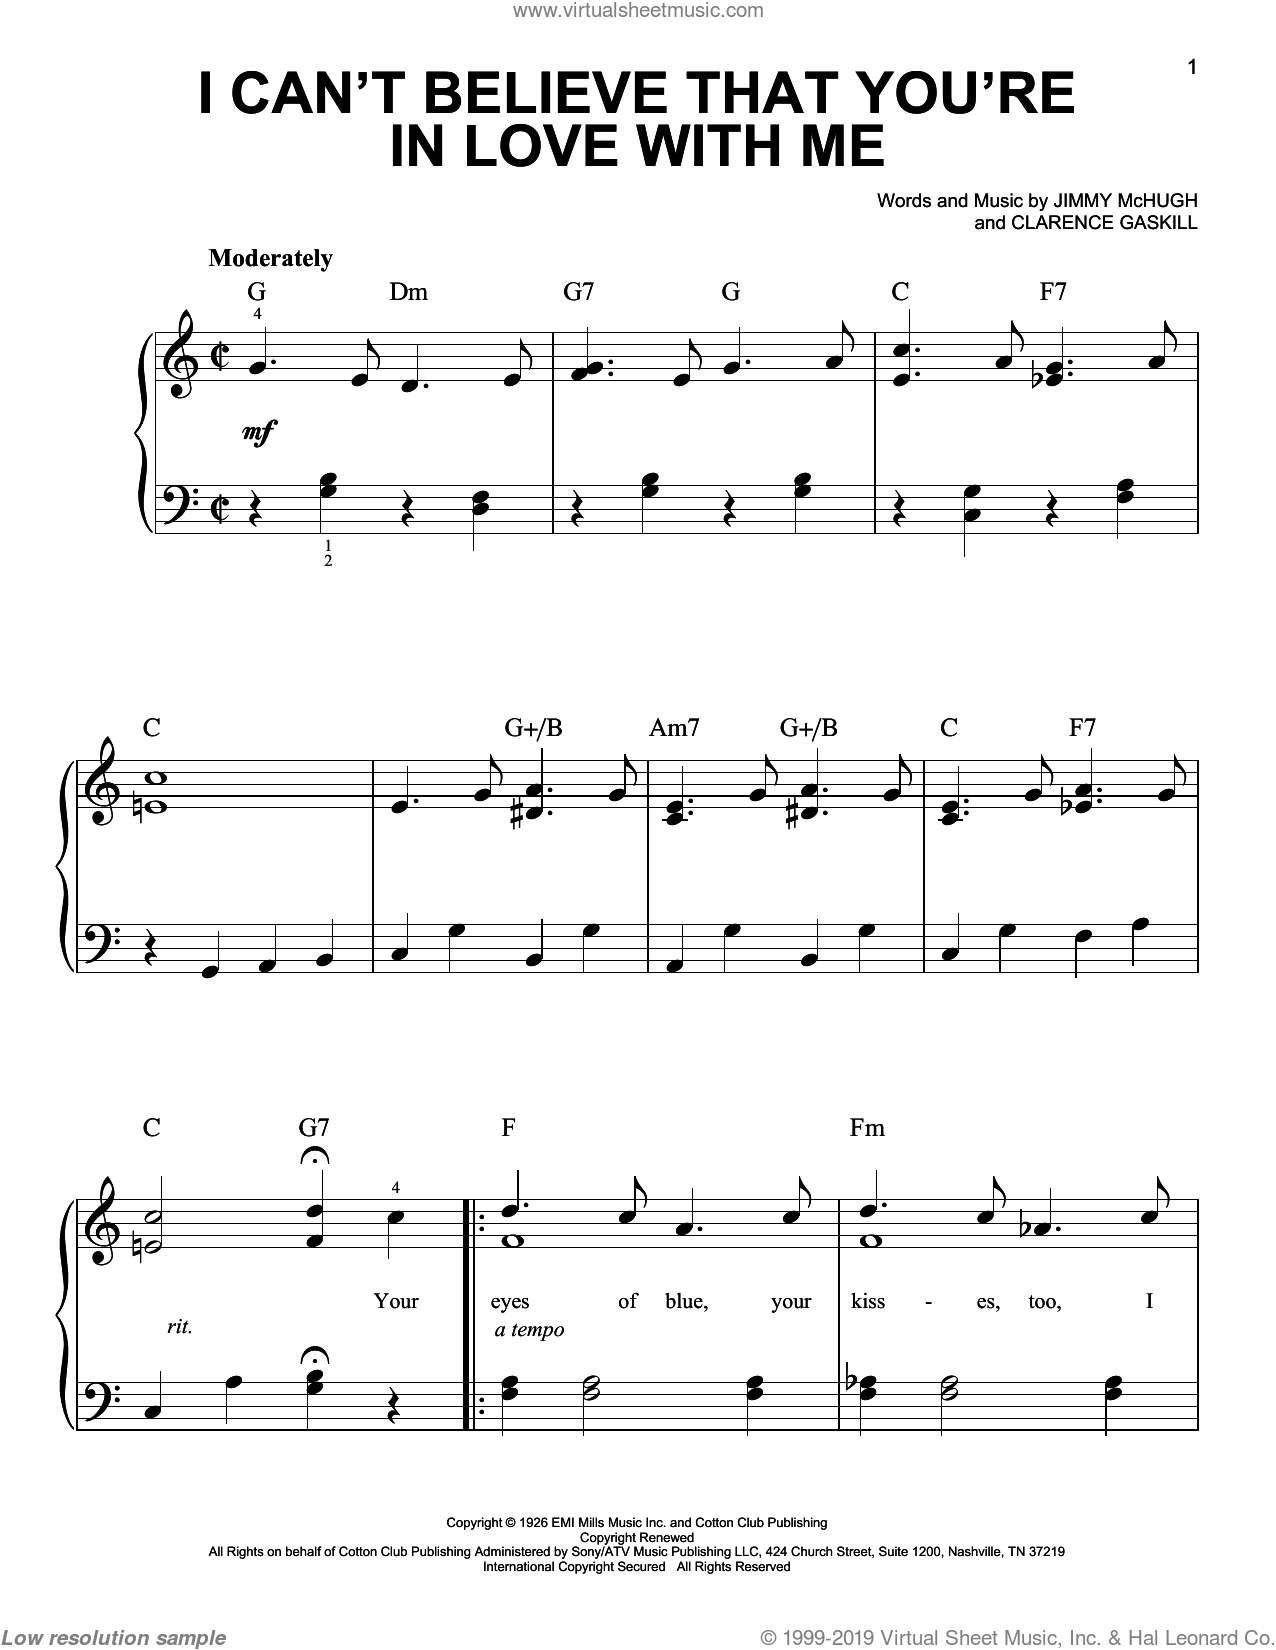 I Can't Believe That You're In Love With Me sheet music for piano solo by Jimmy McHugh and Clarence Gaskill, easy piano. Score Image Preview.